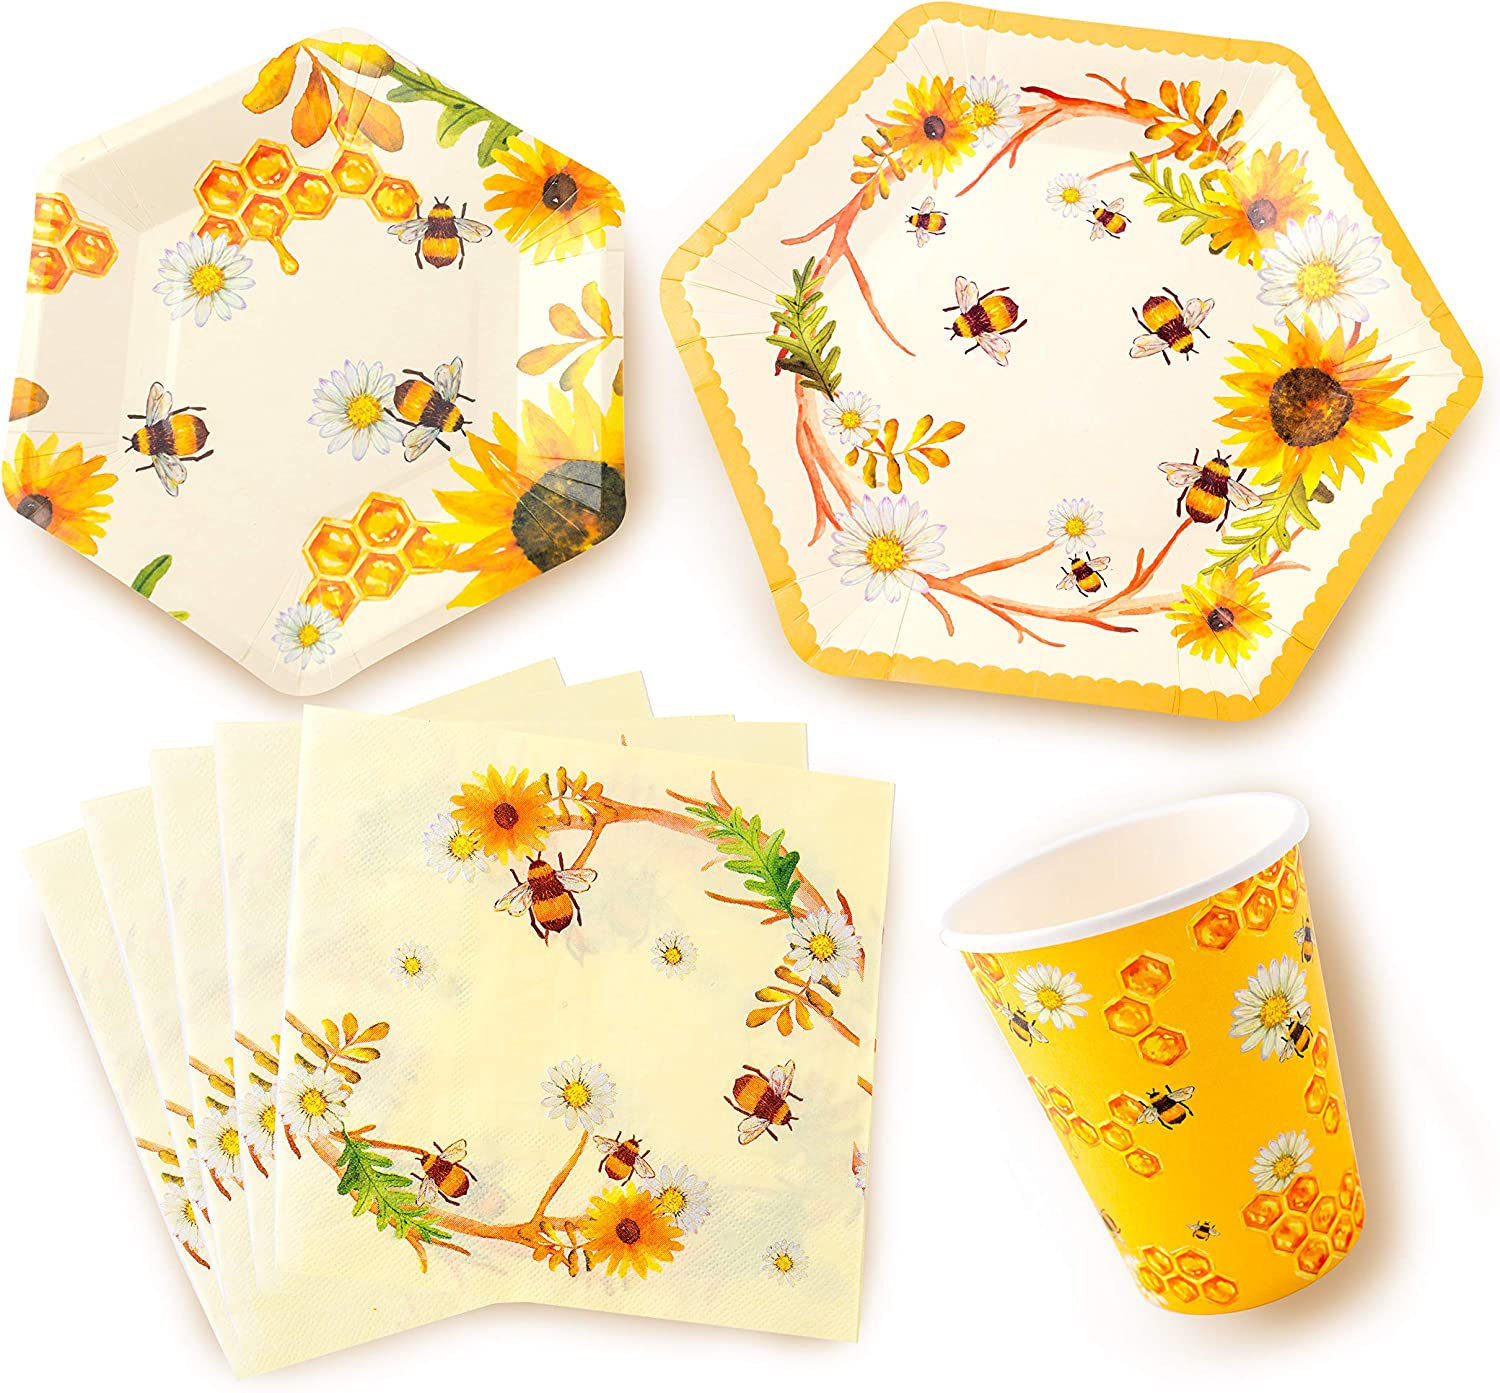 Bee Party Supplies Bumble Bee Party Decorations Includes Dinner Plates Dessert Plates Cups Napkins For Birthday kids Baby shower Parties Serves 16